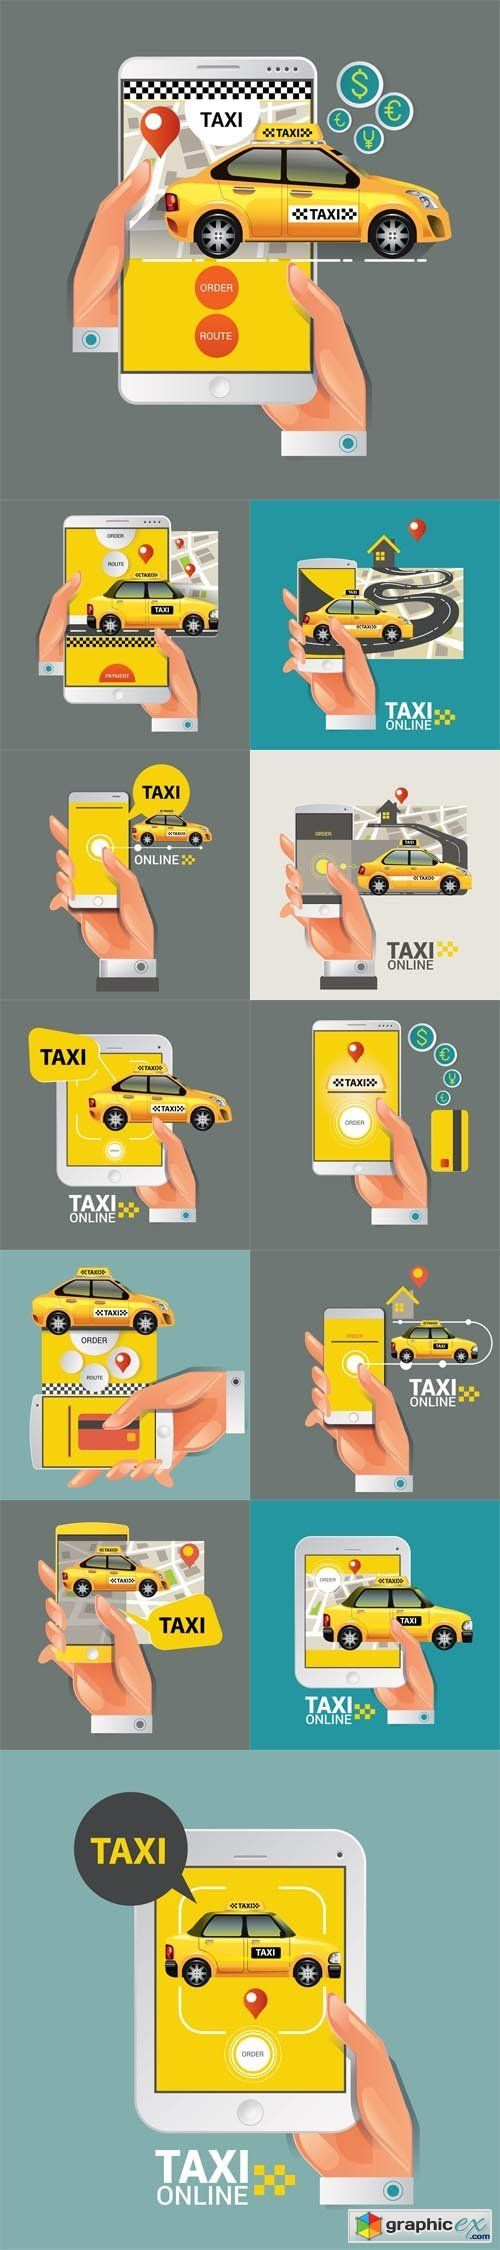 Taxi on line. Taxi sign. Taxi service on smart phone  stock images